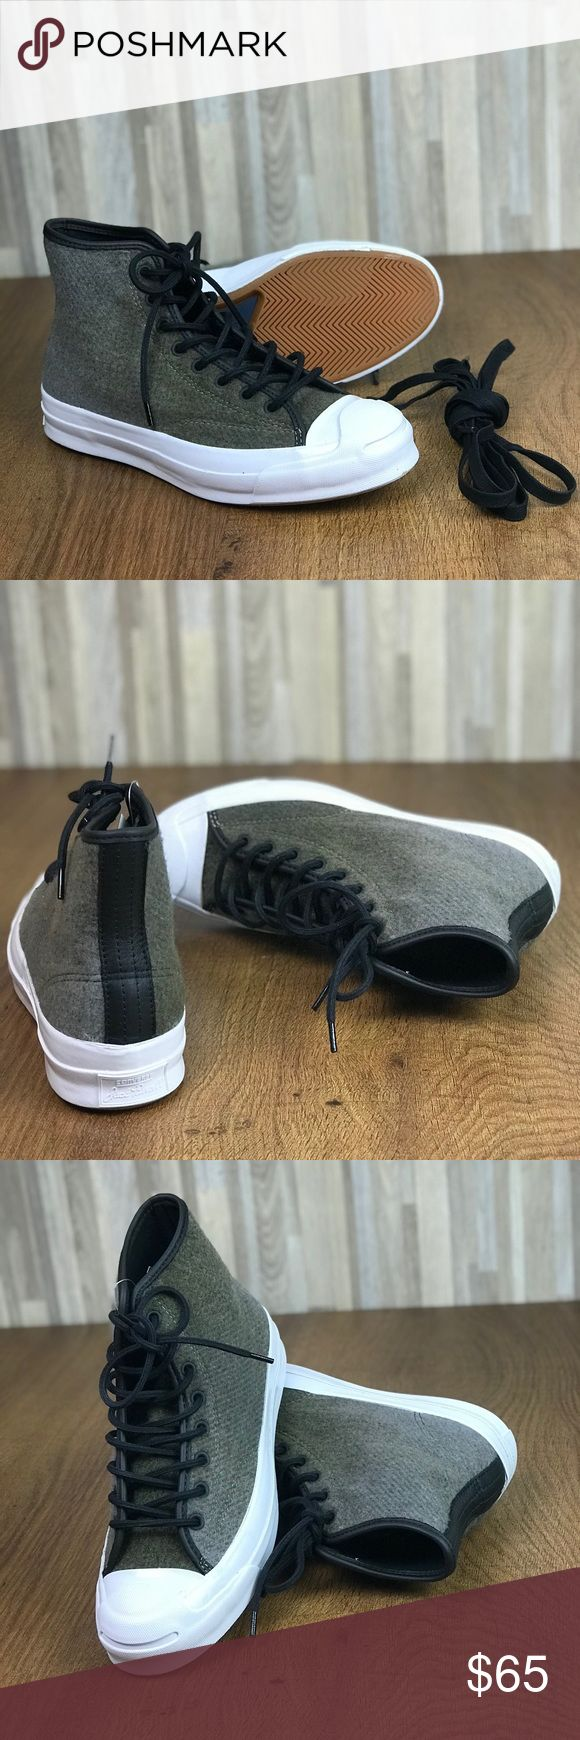 Converse&Woolrich Jack Purcell Signature HT JUTE W Brand new with no lid box. Price is firm! No trades.  True to size.                           Materials: wool upper, rubber sole.                                - Round cap toe - Contrast construction - Converse brand logo - Lace-up closure - Lightly padded footbed - Rubber bumper - Grip sole Converse Shoes Sneakers